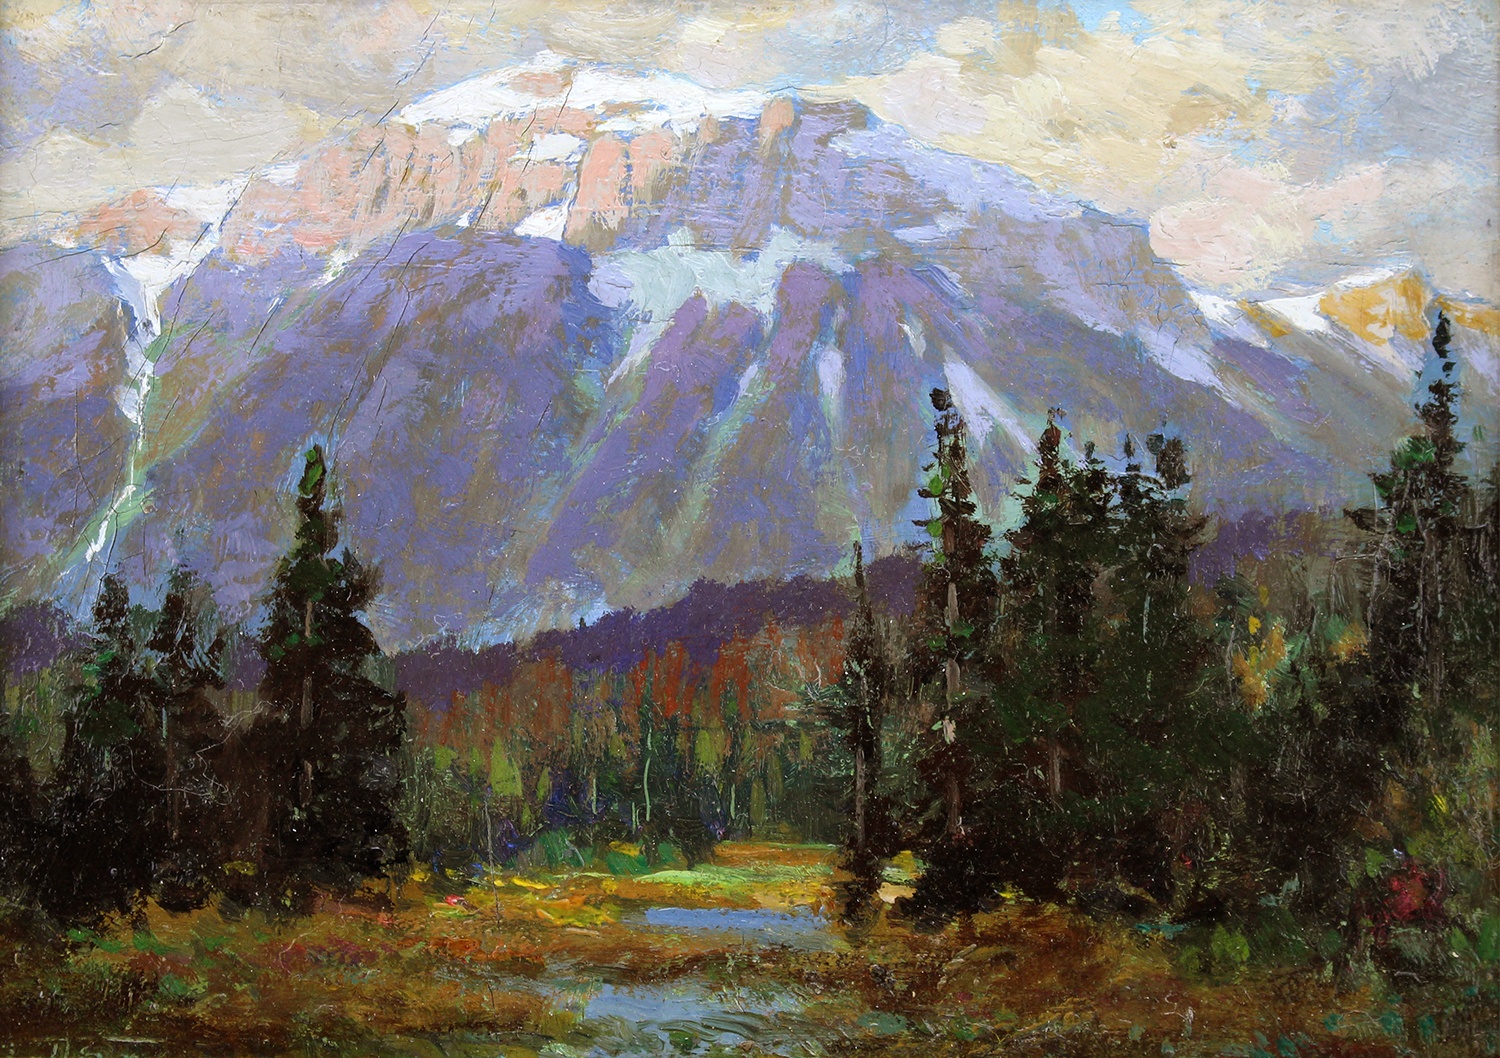 Frederic Marlett Bell-Smith (Canadian 1846-1923) In the Selkirks